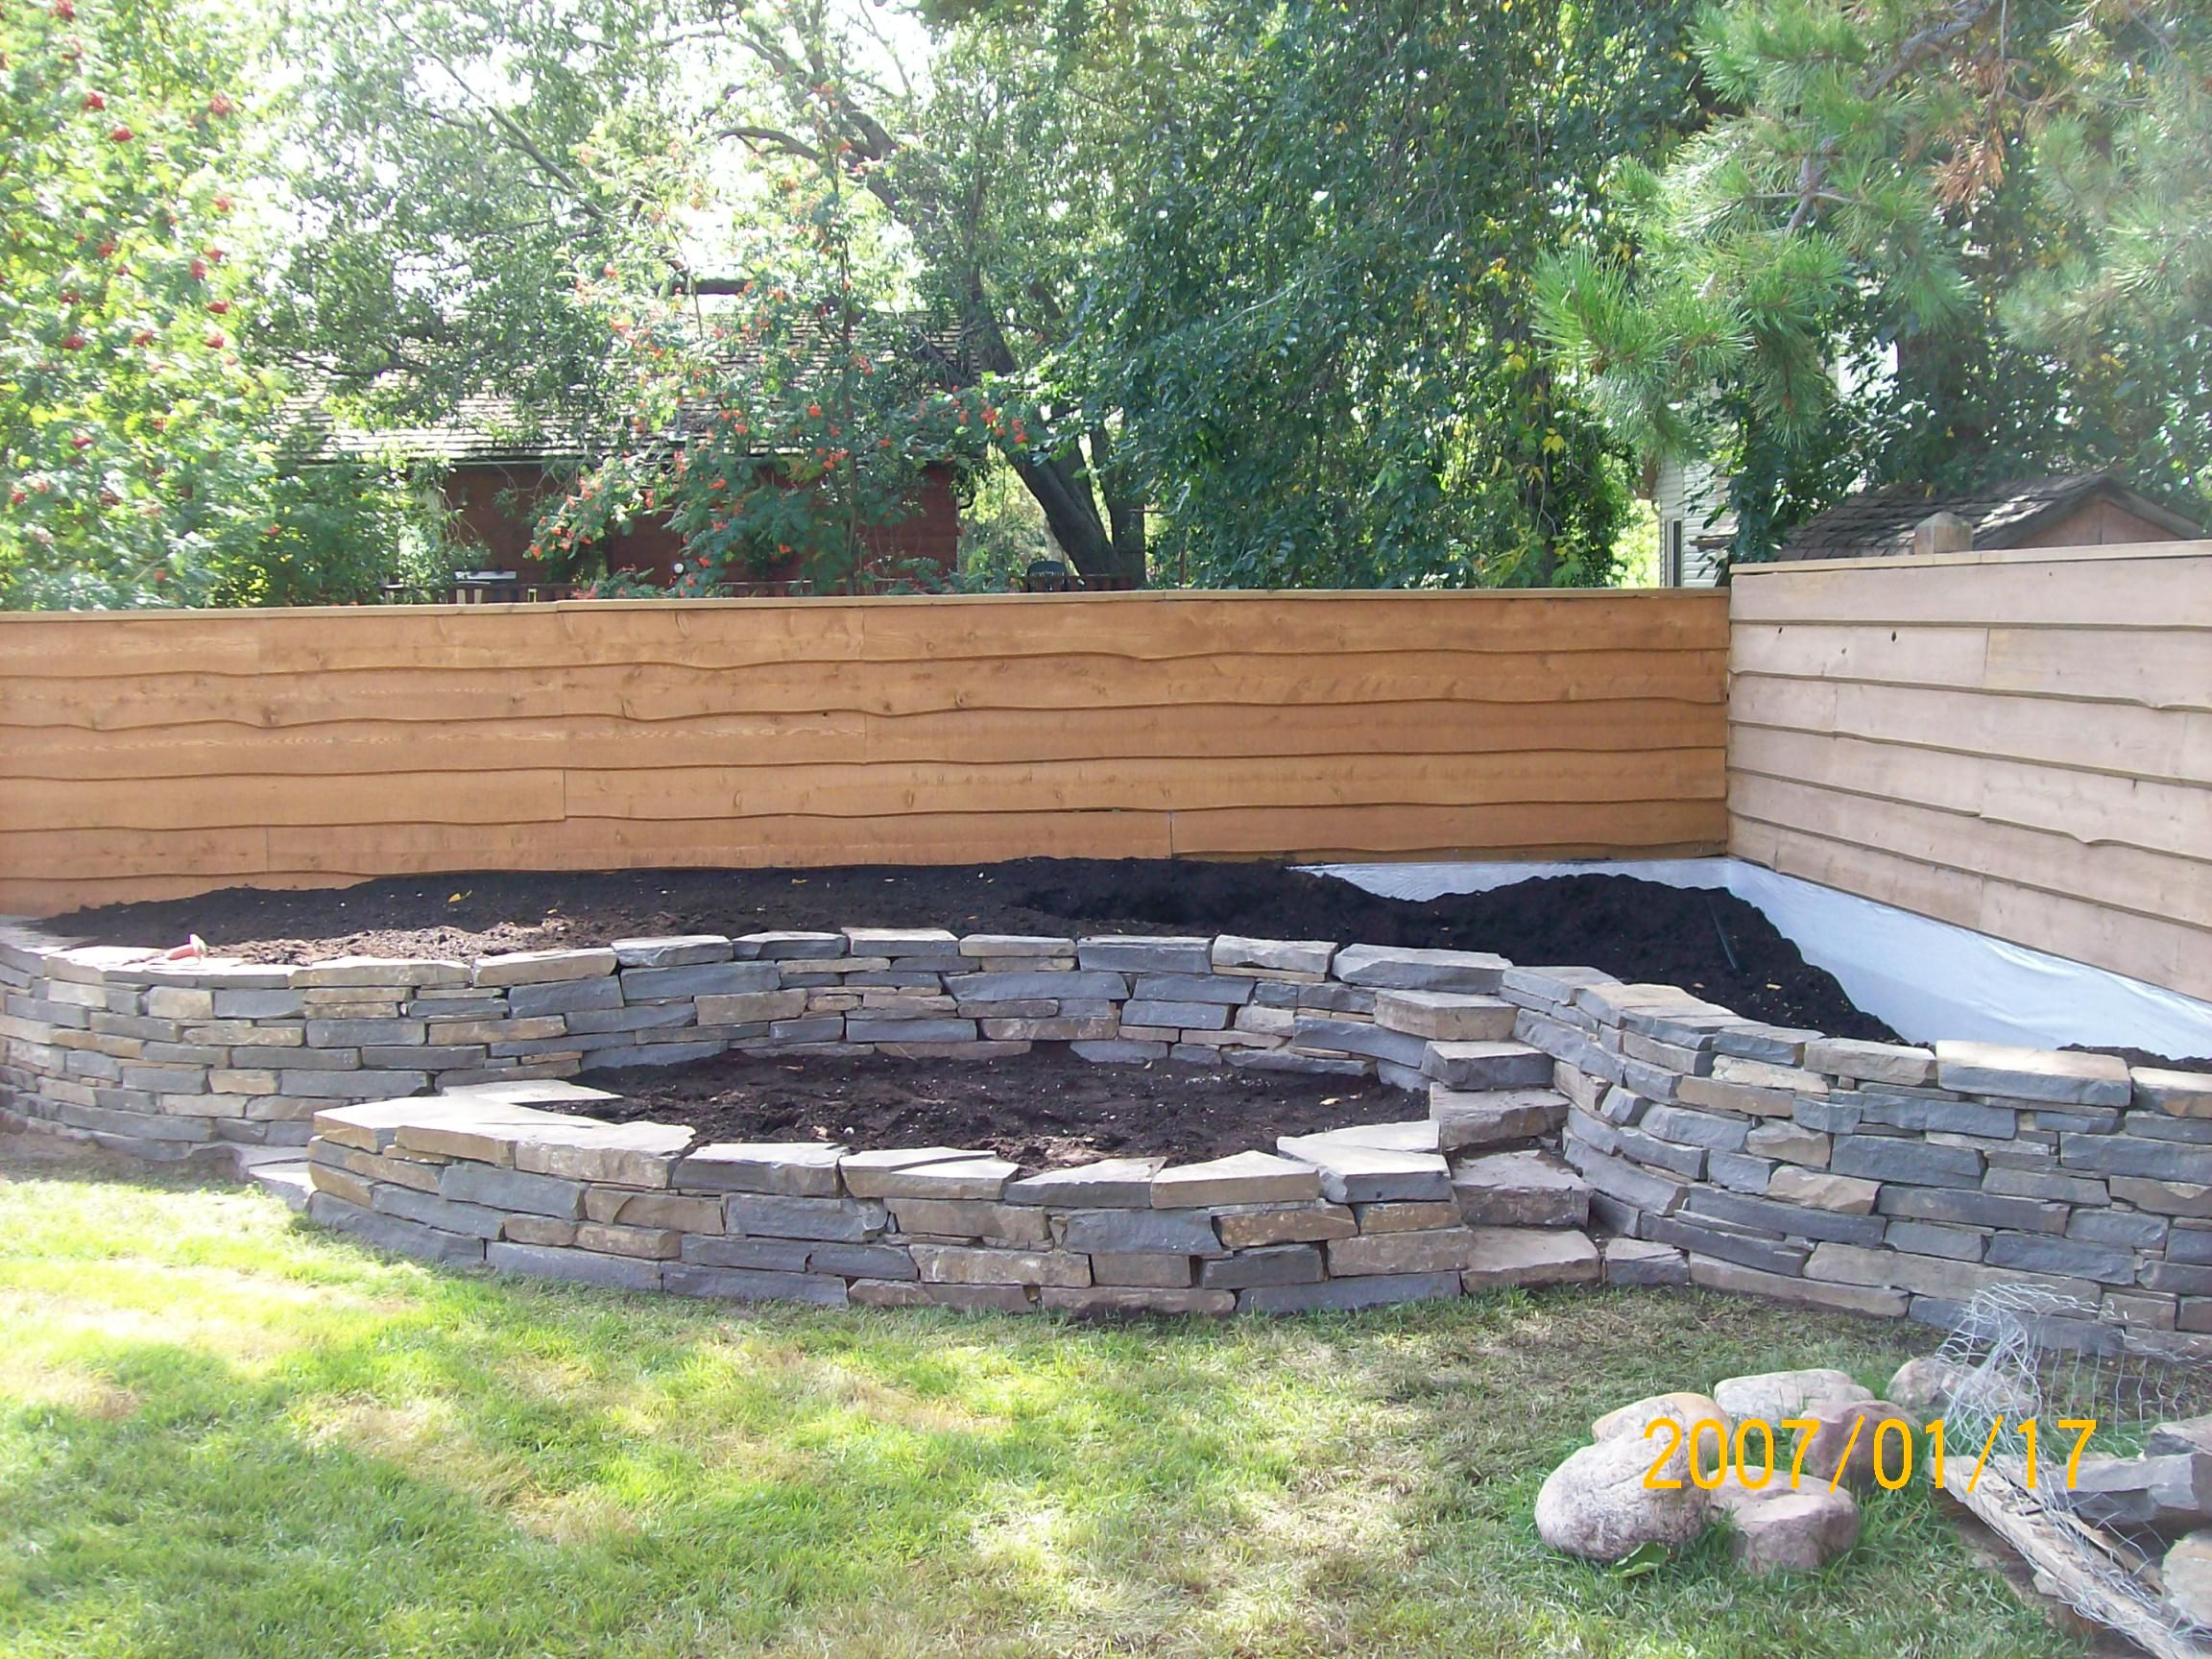 Another Natural Stone Wall I Built. I Wasnu0027t Very Particular About Building  Up